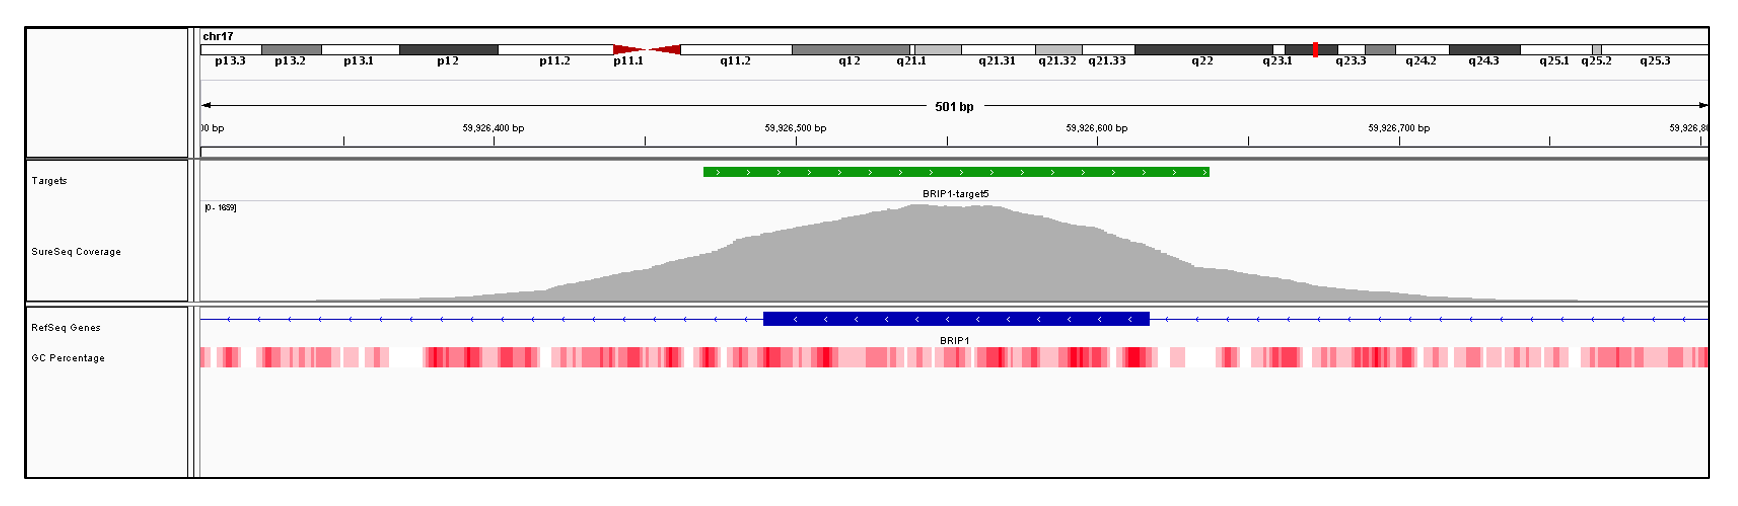 BRIP1 Exon 5 (hg19 chr17:59926490-59926617). Depth of coverage per base (grey). Targeted region (green). Gene coding region as defined by RefSeq (blue). GC percentage (red). Image